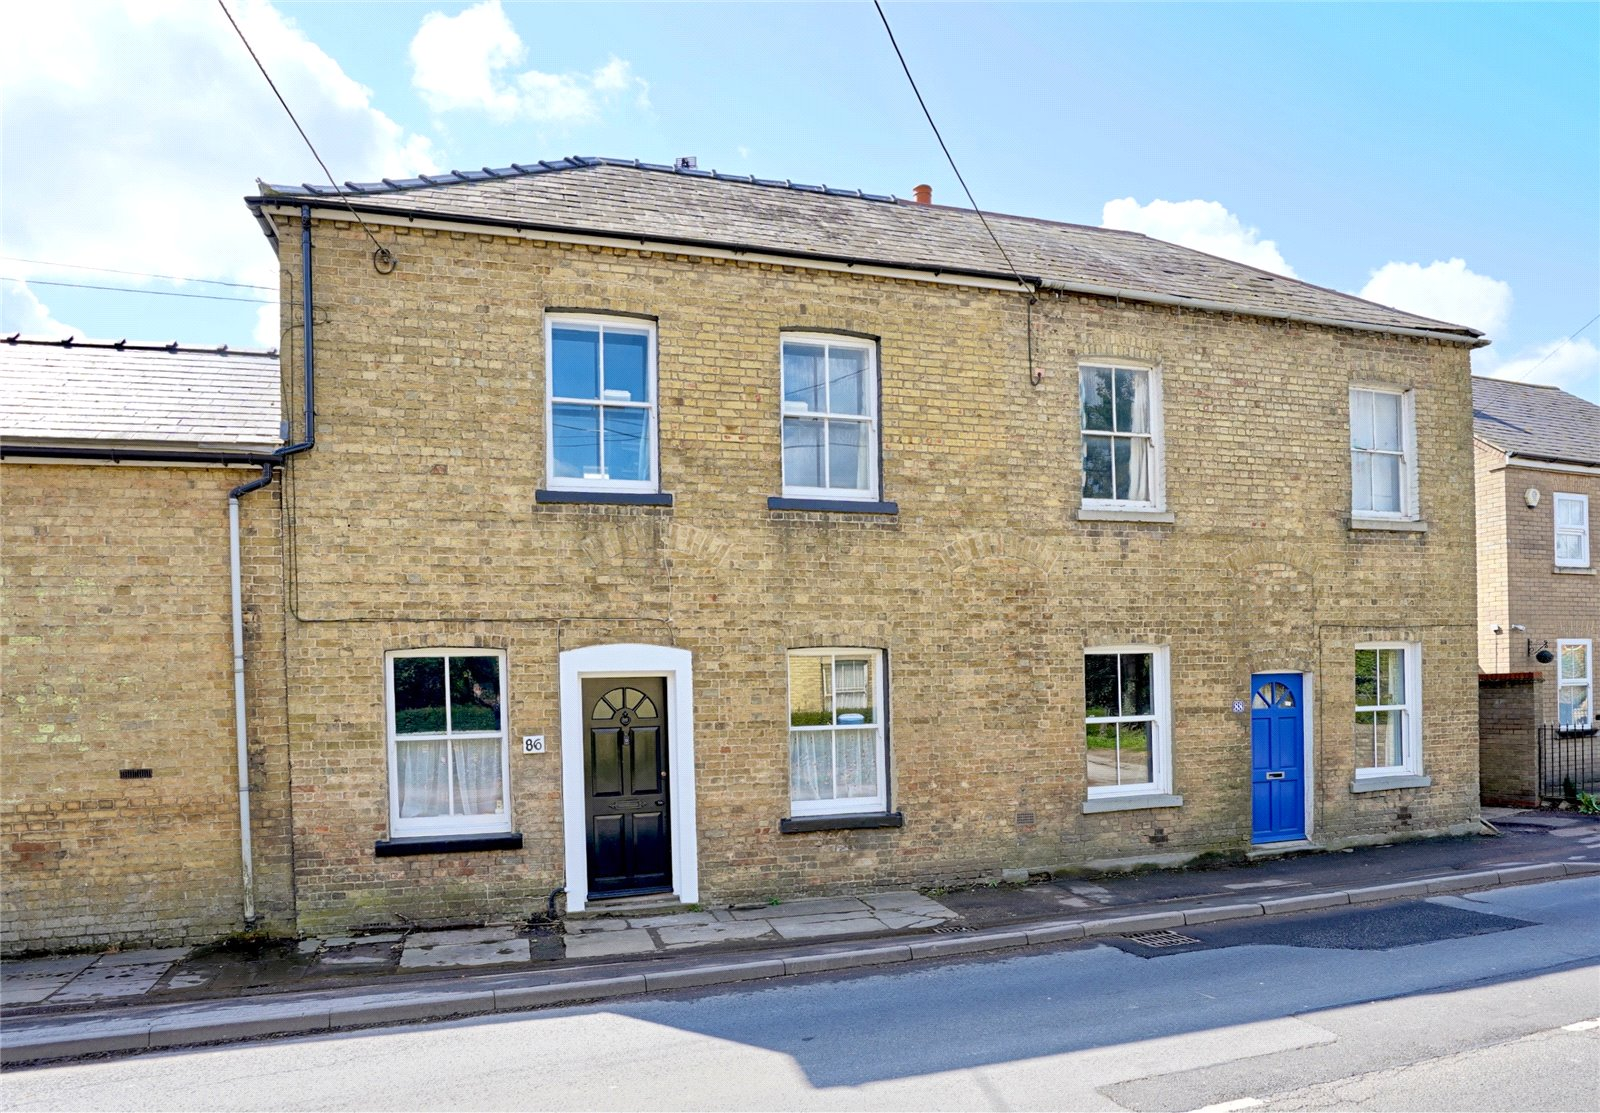 3 bed house for sale in Earith, PE28 3PN 0